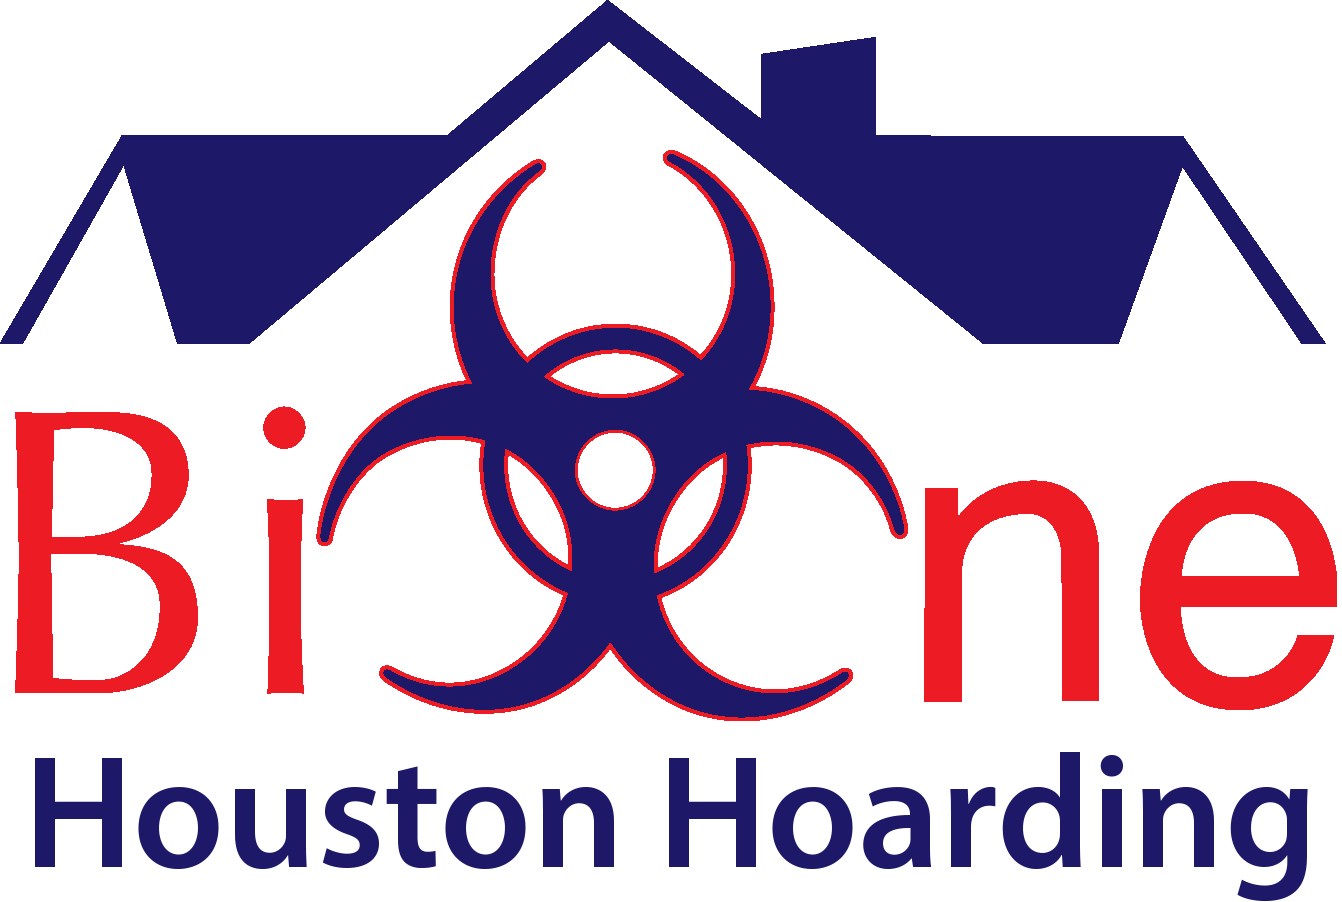 Houston Hoarding